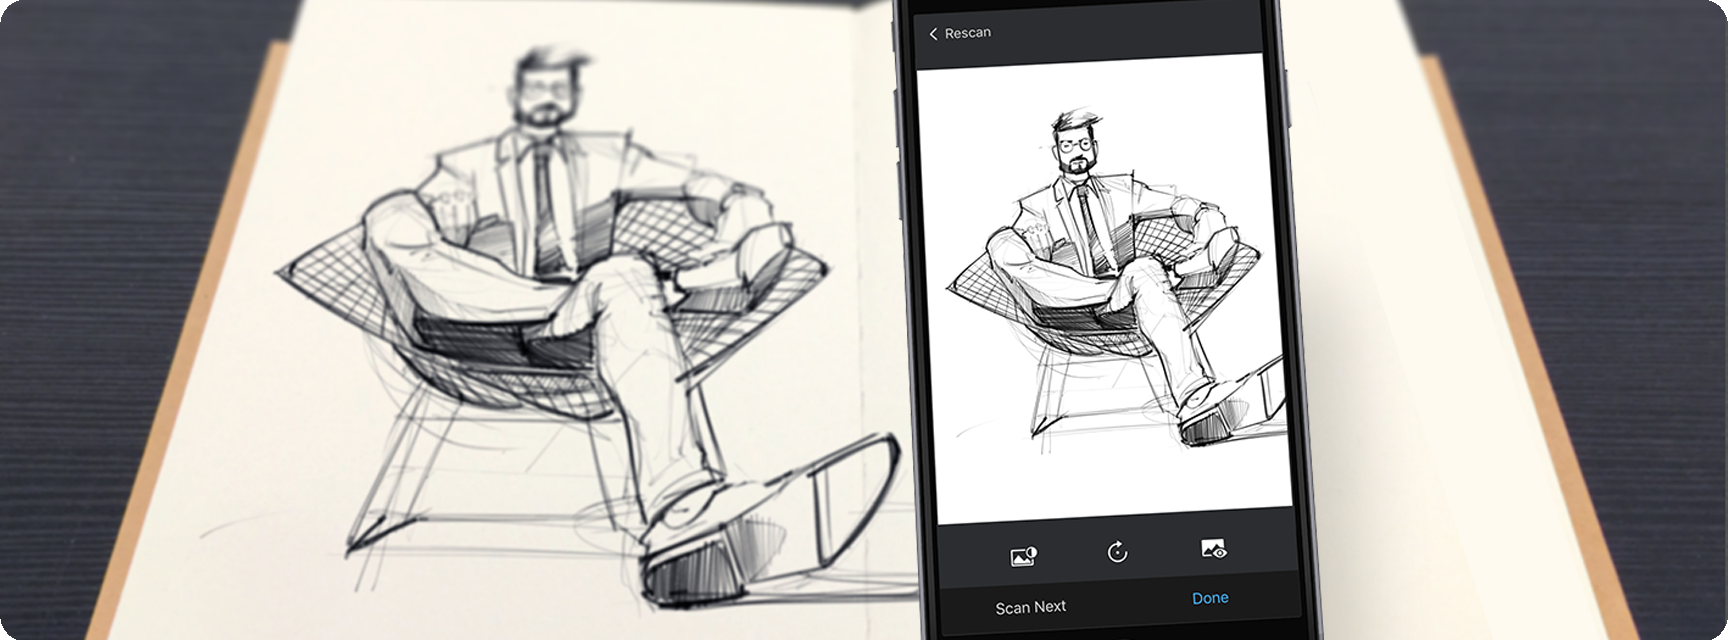 1728x640 How To Scan All Your Sketches And Keep Working On Them